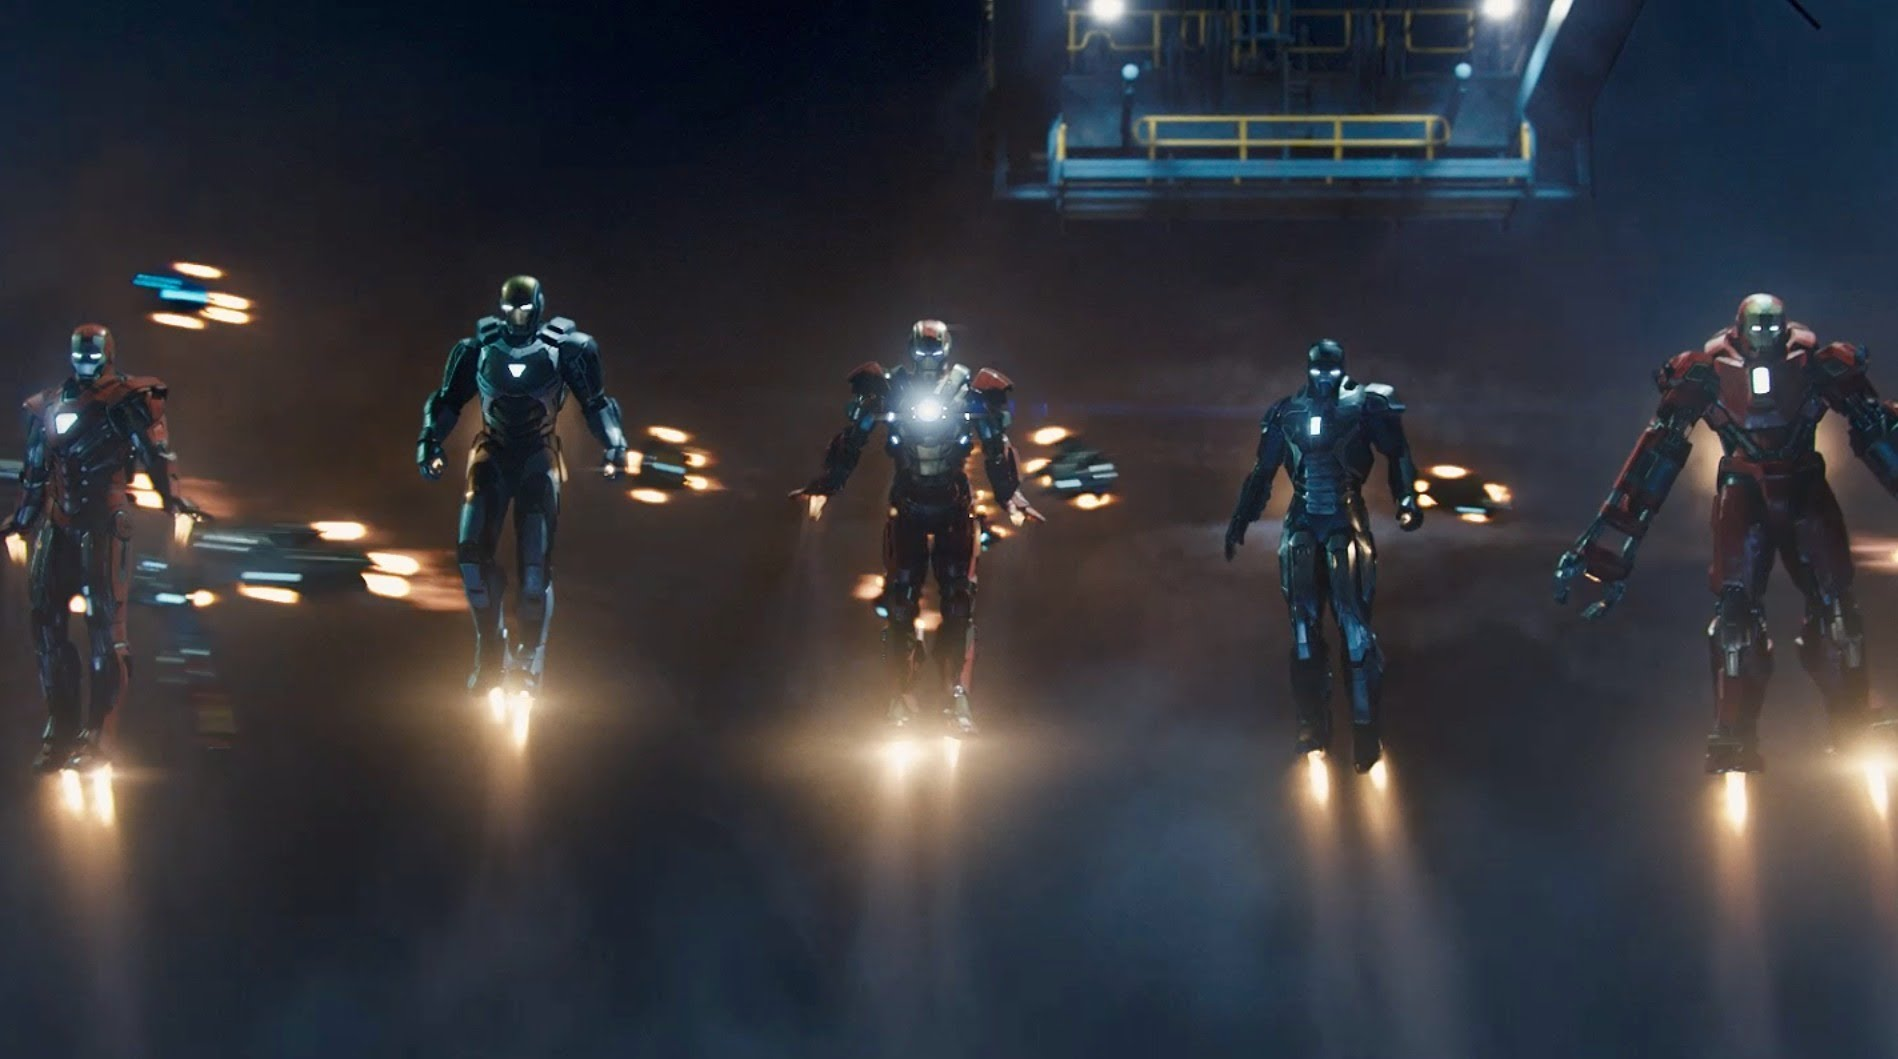 """Iron Man 3 Trailer"" John Toll, ASC 